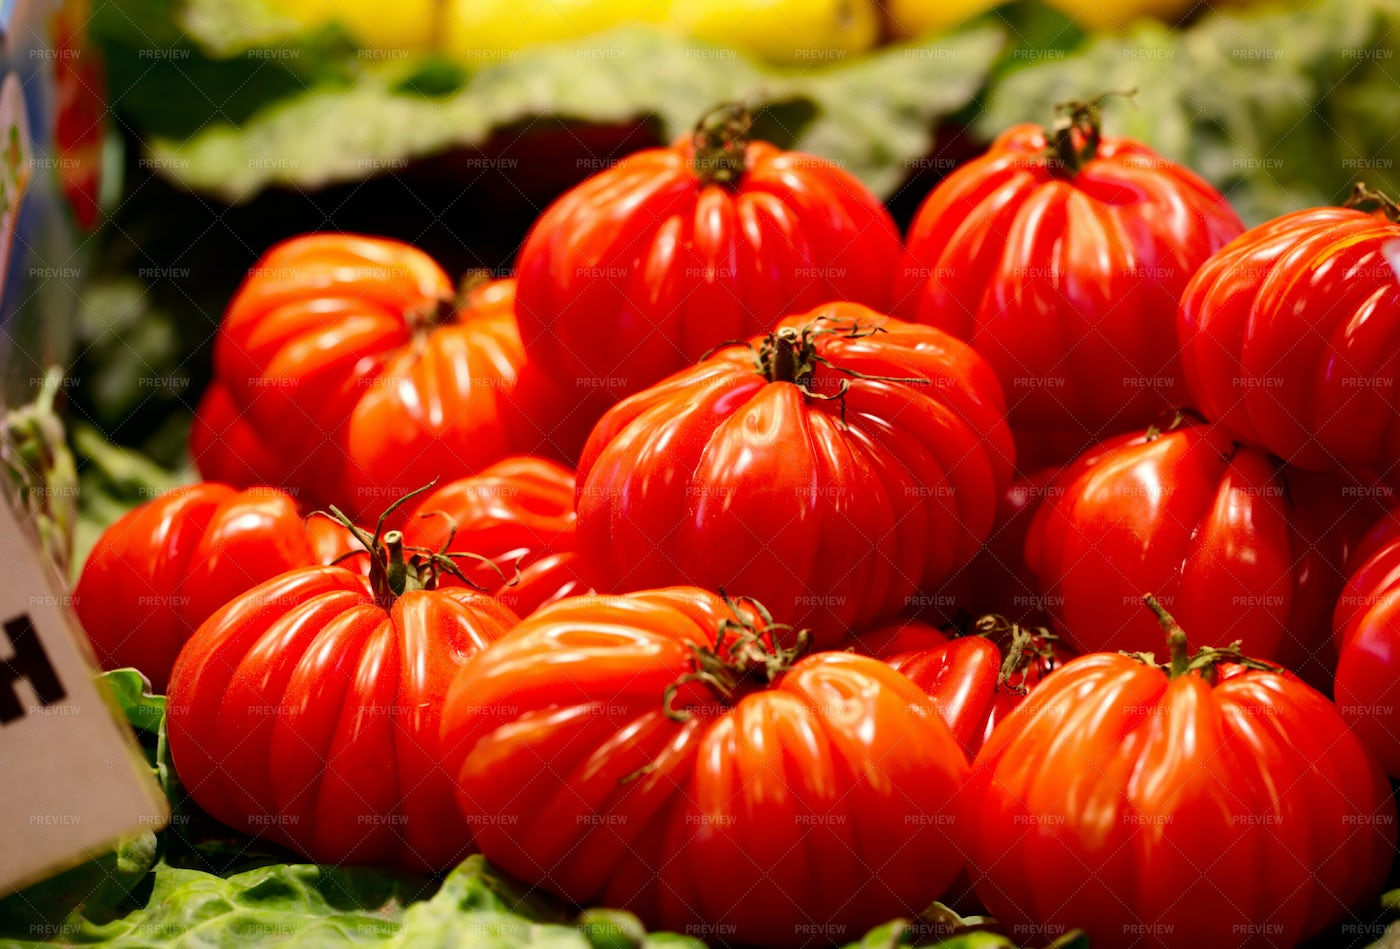 Red Tomatoes At The Market: Stock Photos